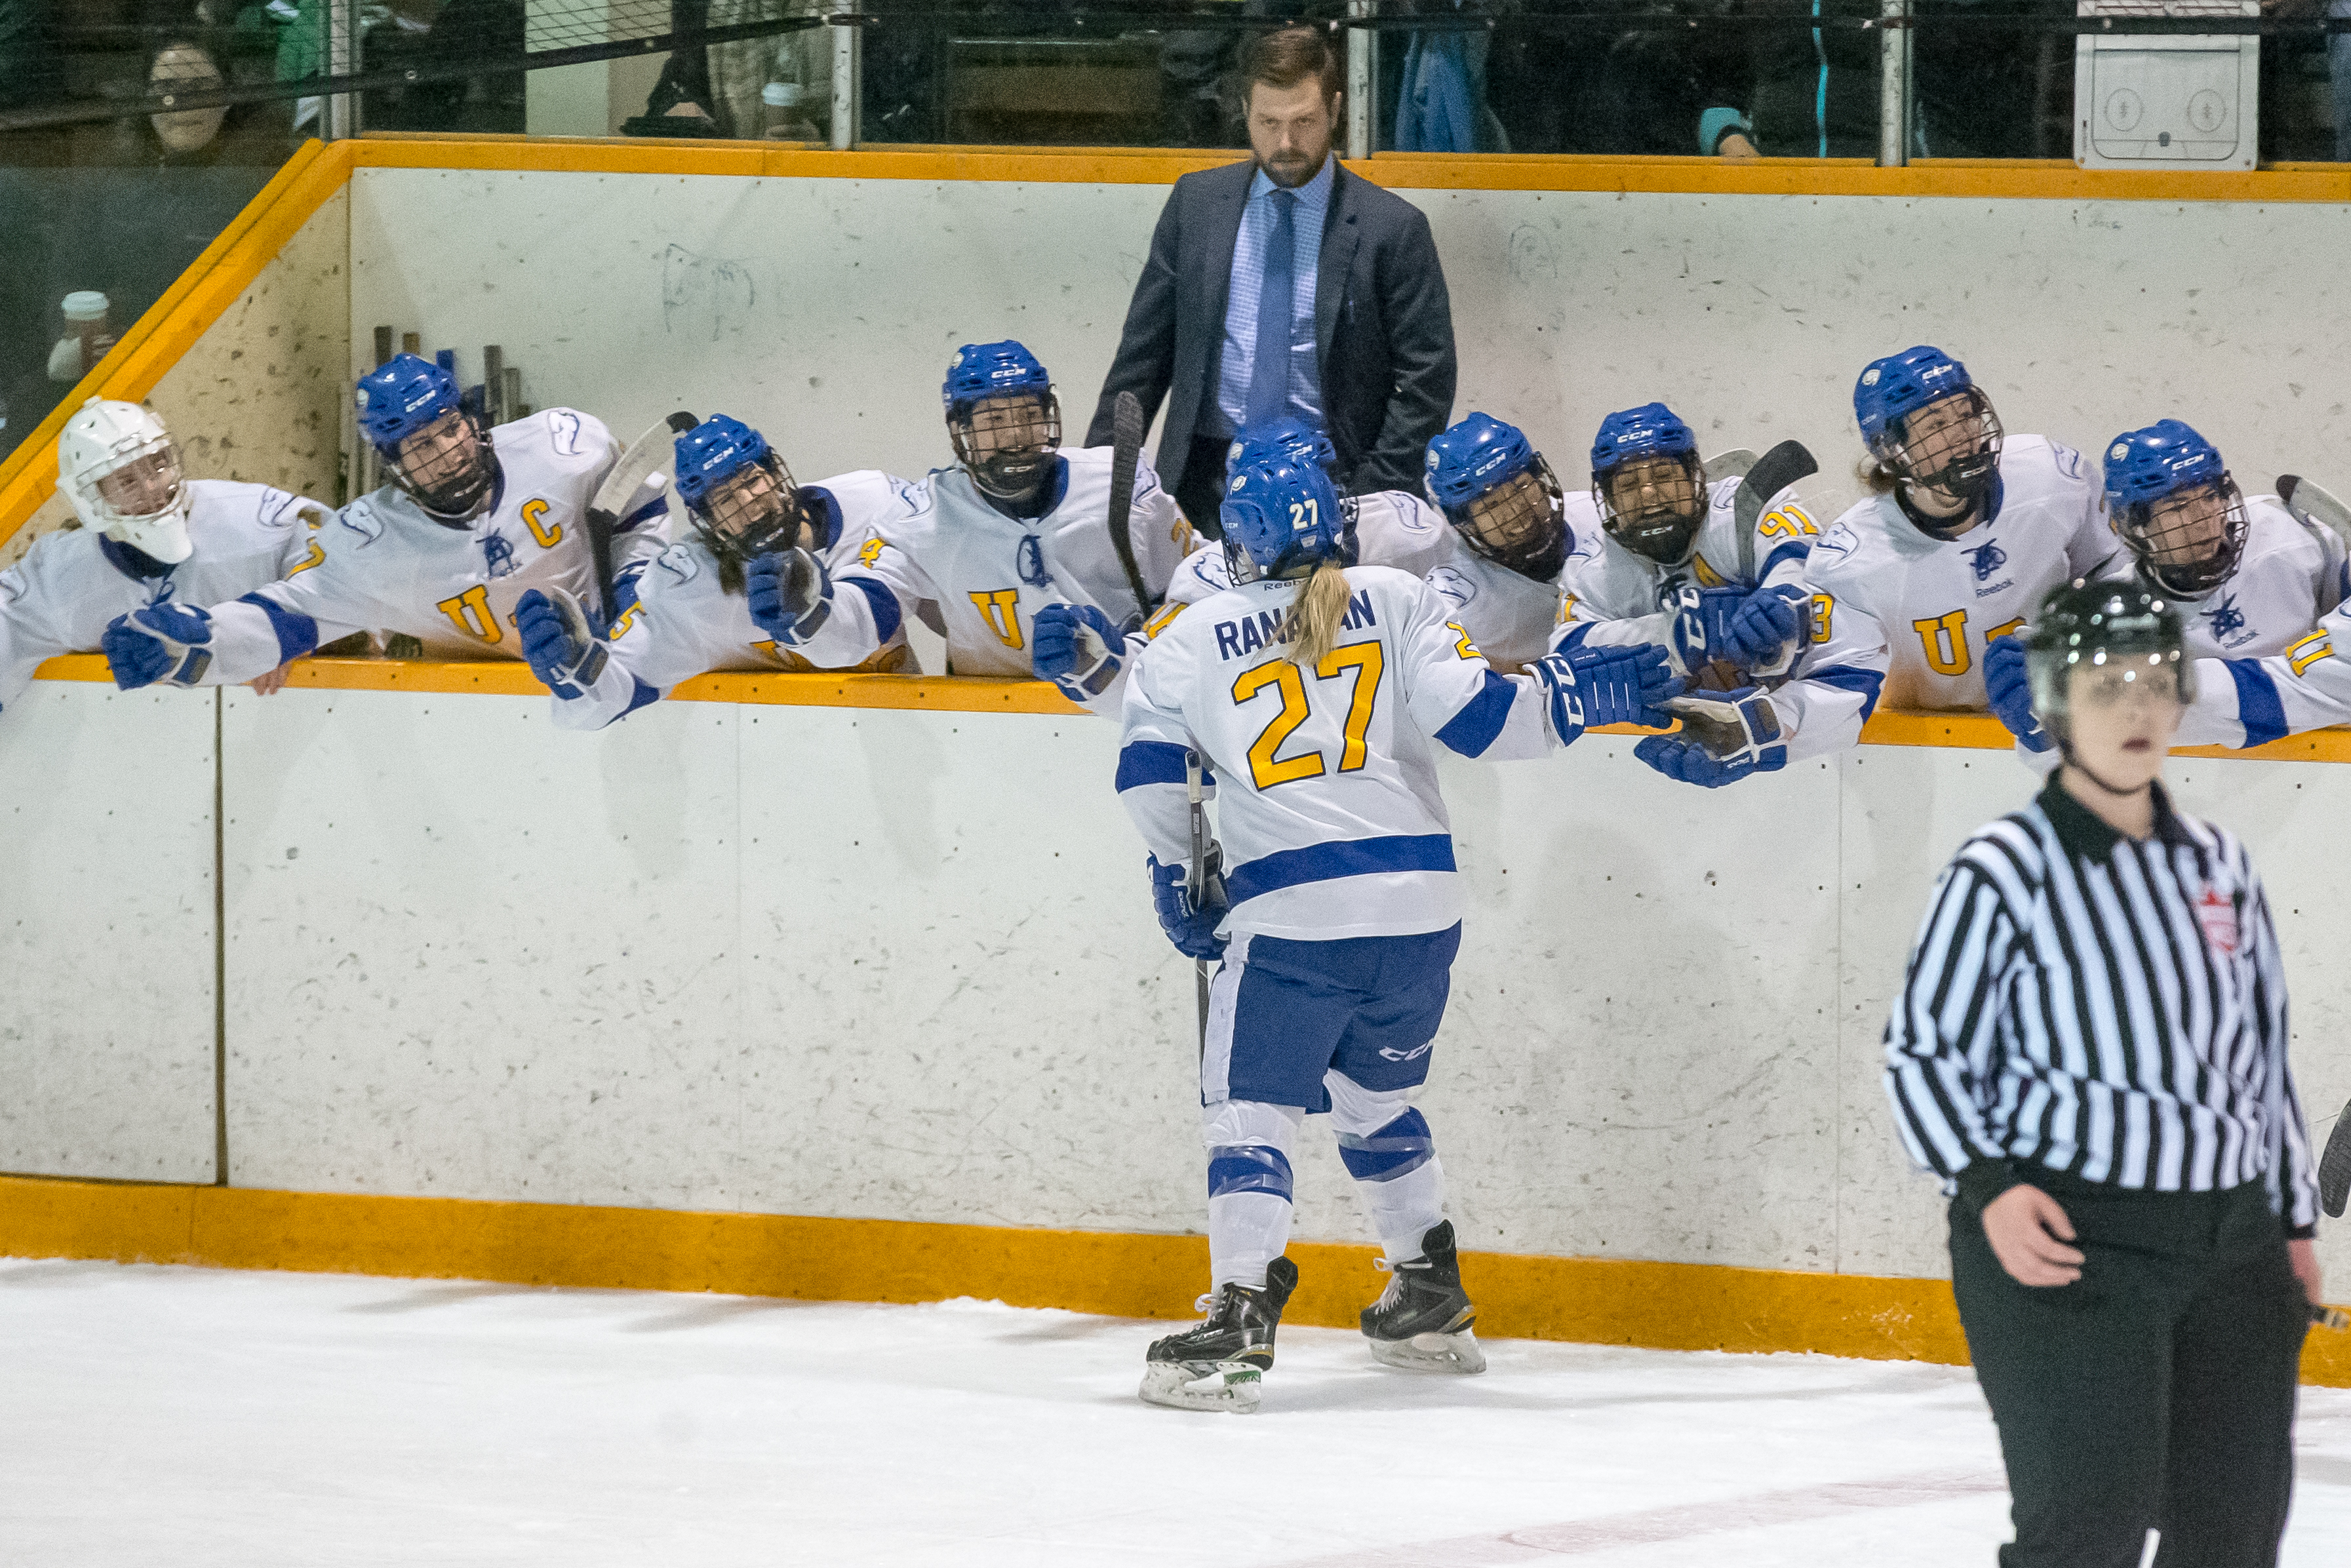 UBC celebrates their lone goal of the series in game two.